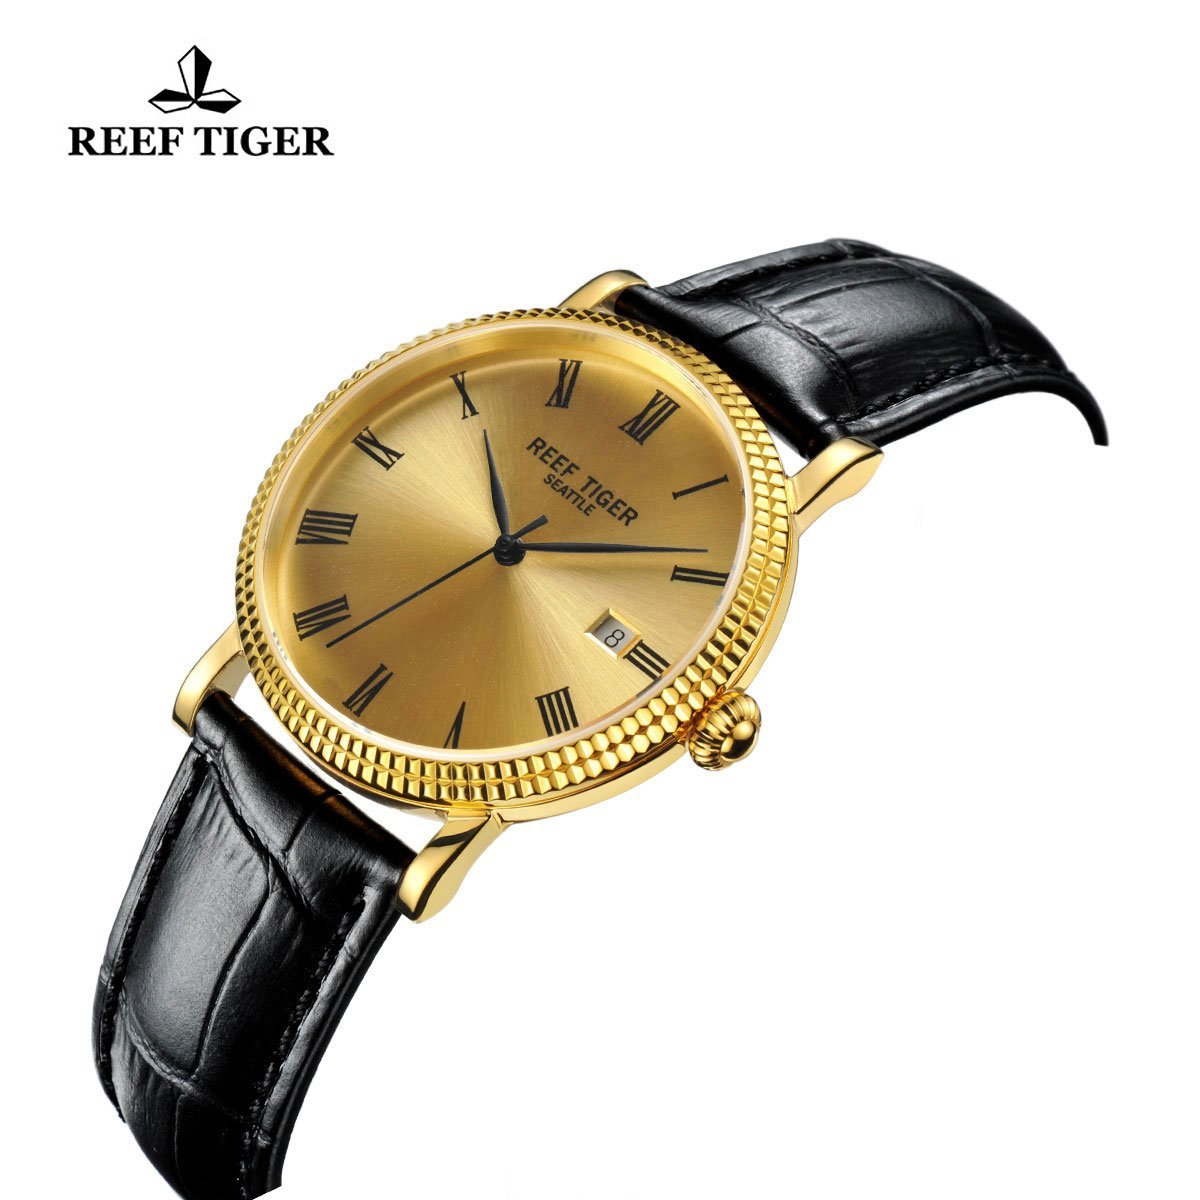 Reef Tiger Designer Dress Watches for Men Yellow Gold Case Leather Strap Date Automatic Watch RGA163 by REEF TIGER (Image #5)